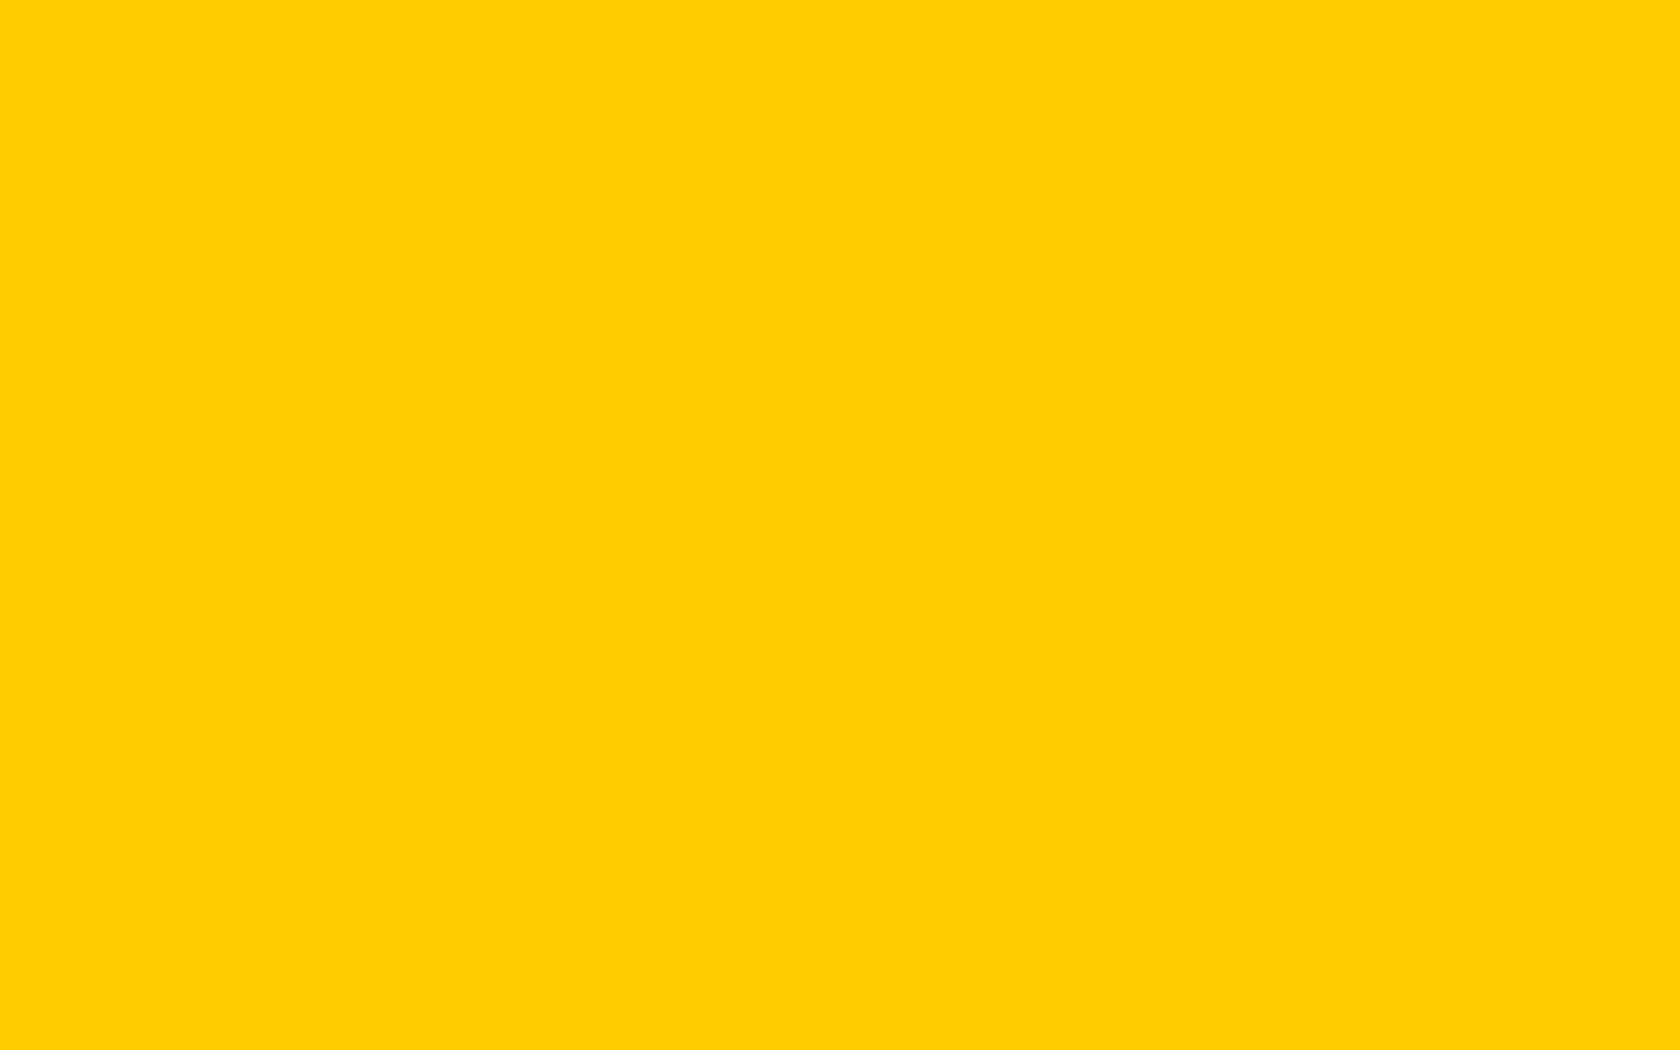 1680x1050 USC Gold Solid Color Background